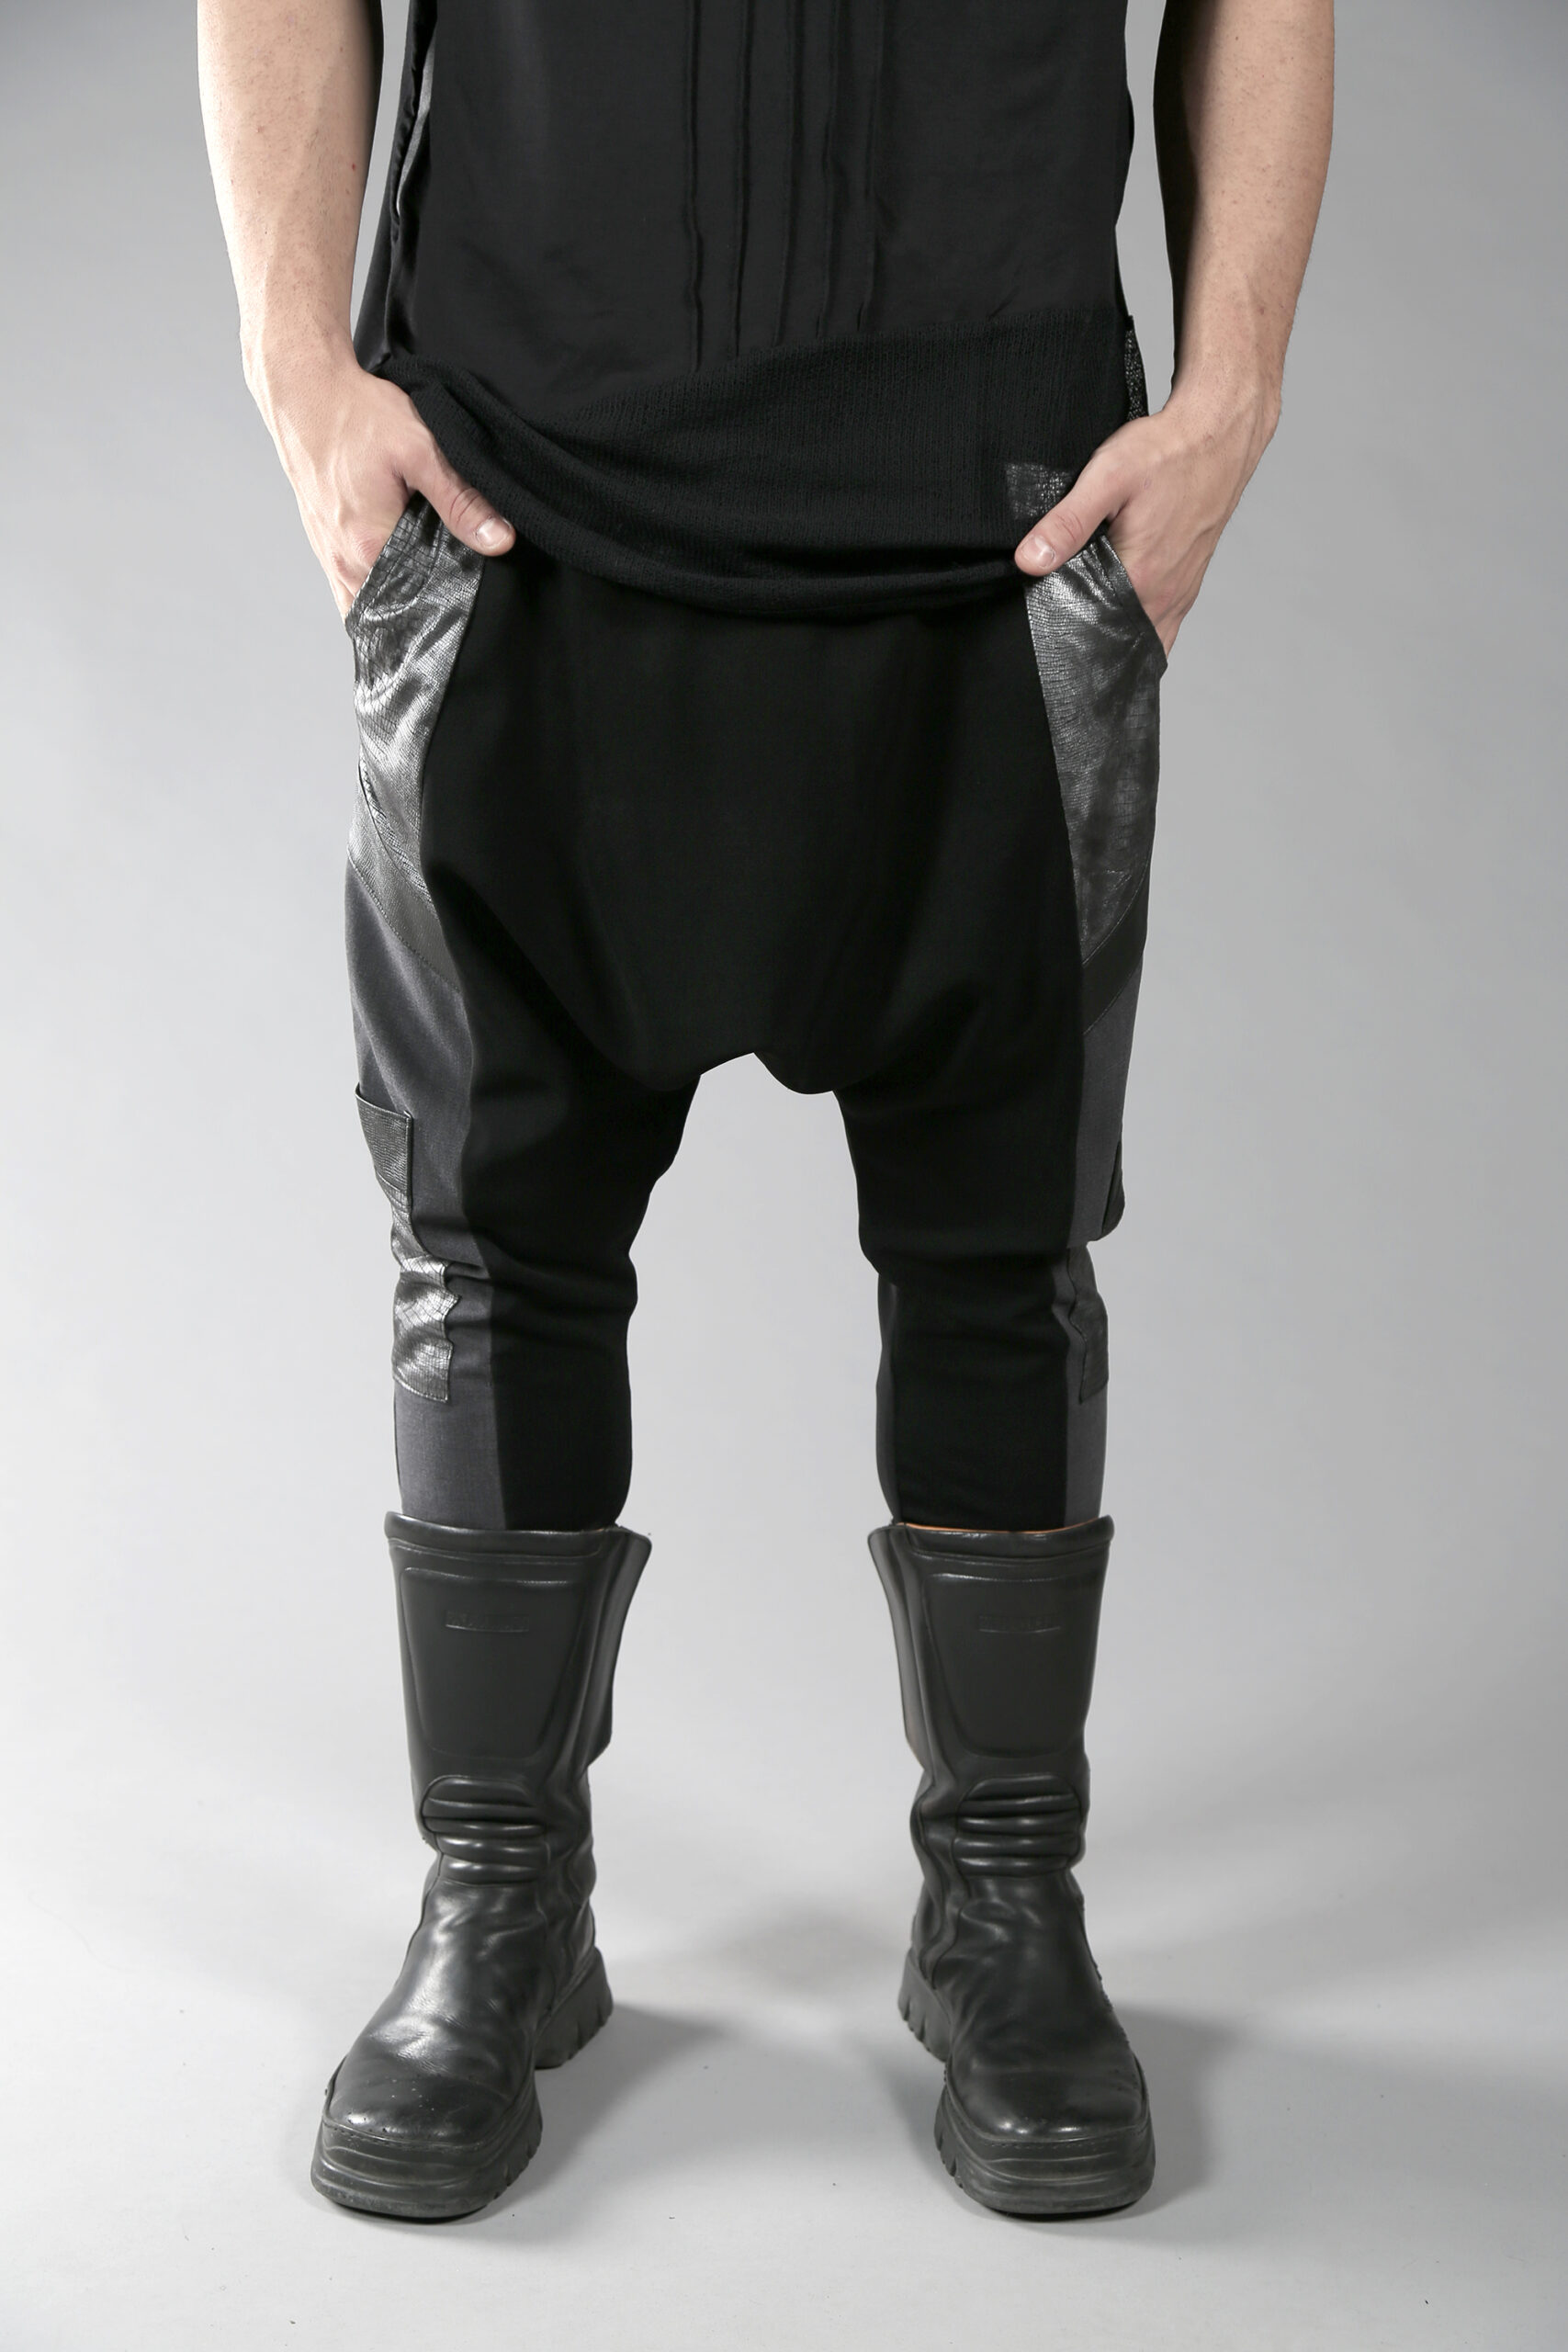 Black & gray long loose men pants designed with eco leather and 2 pockets on the side and lower leg